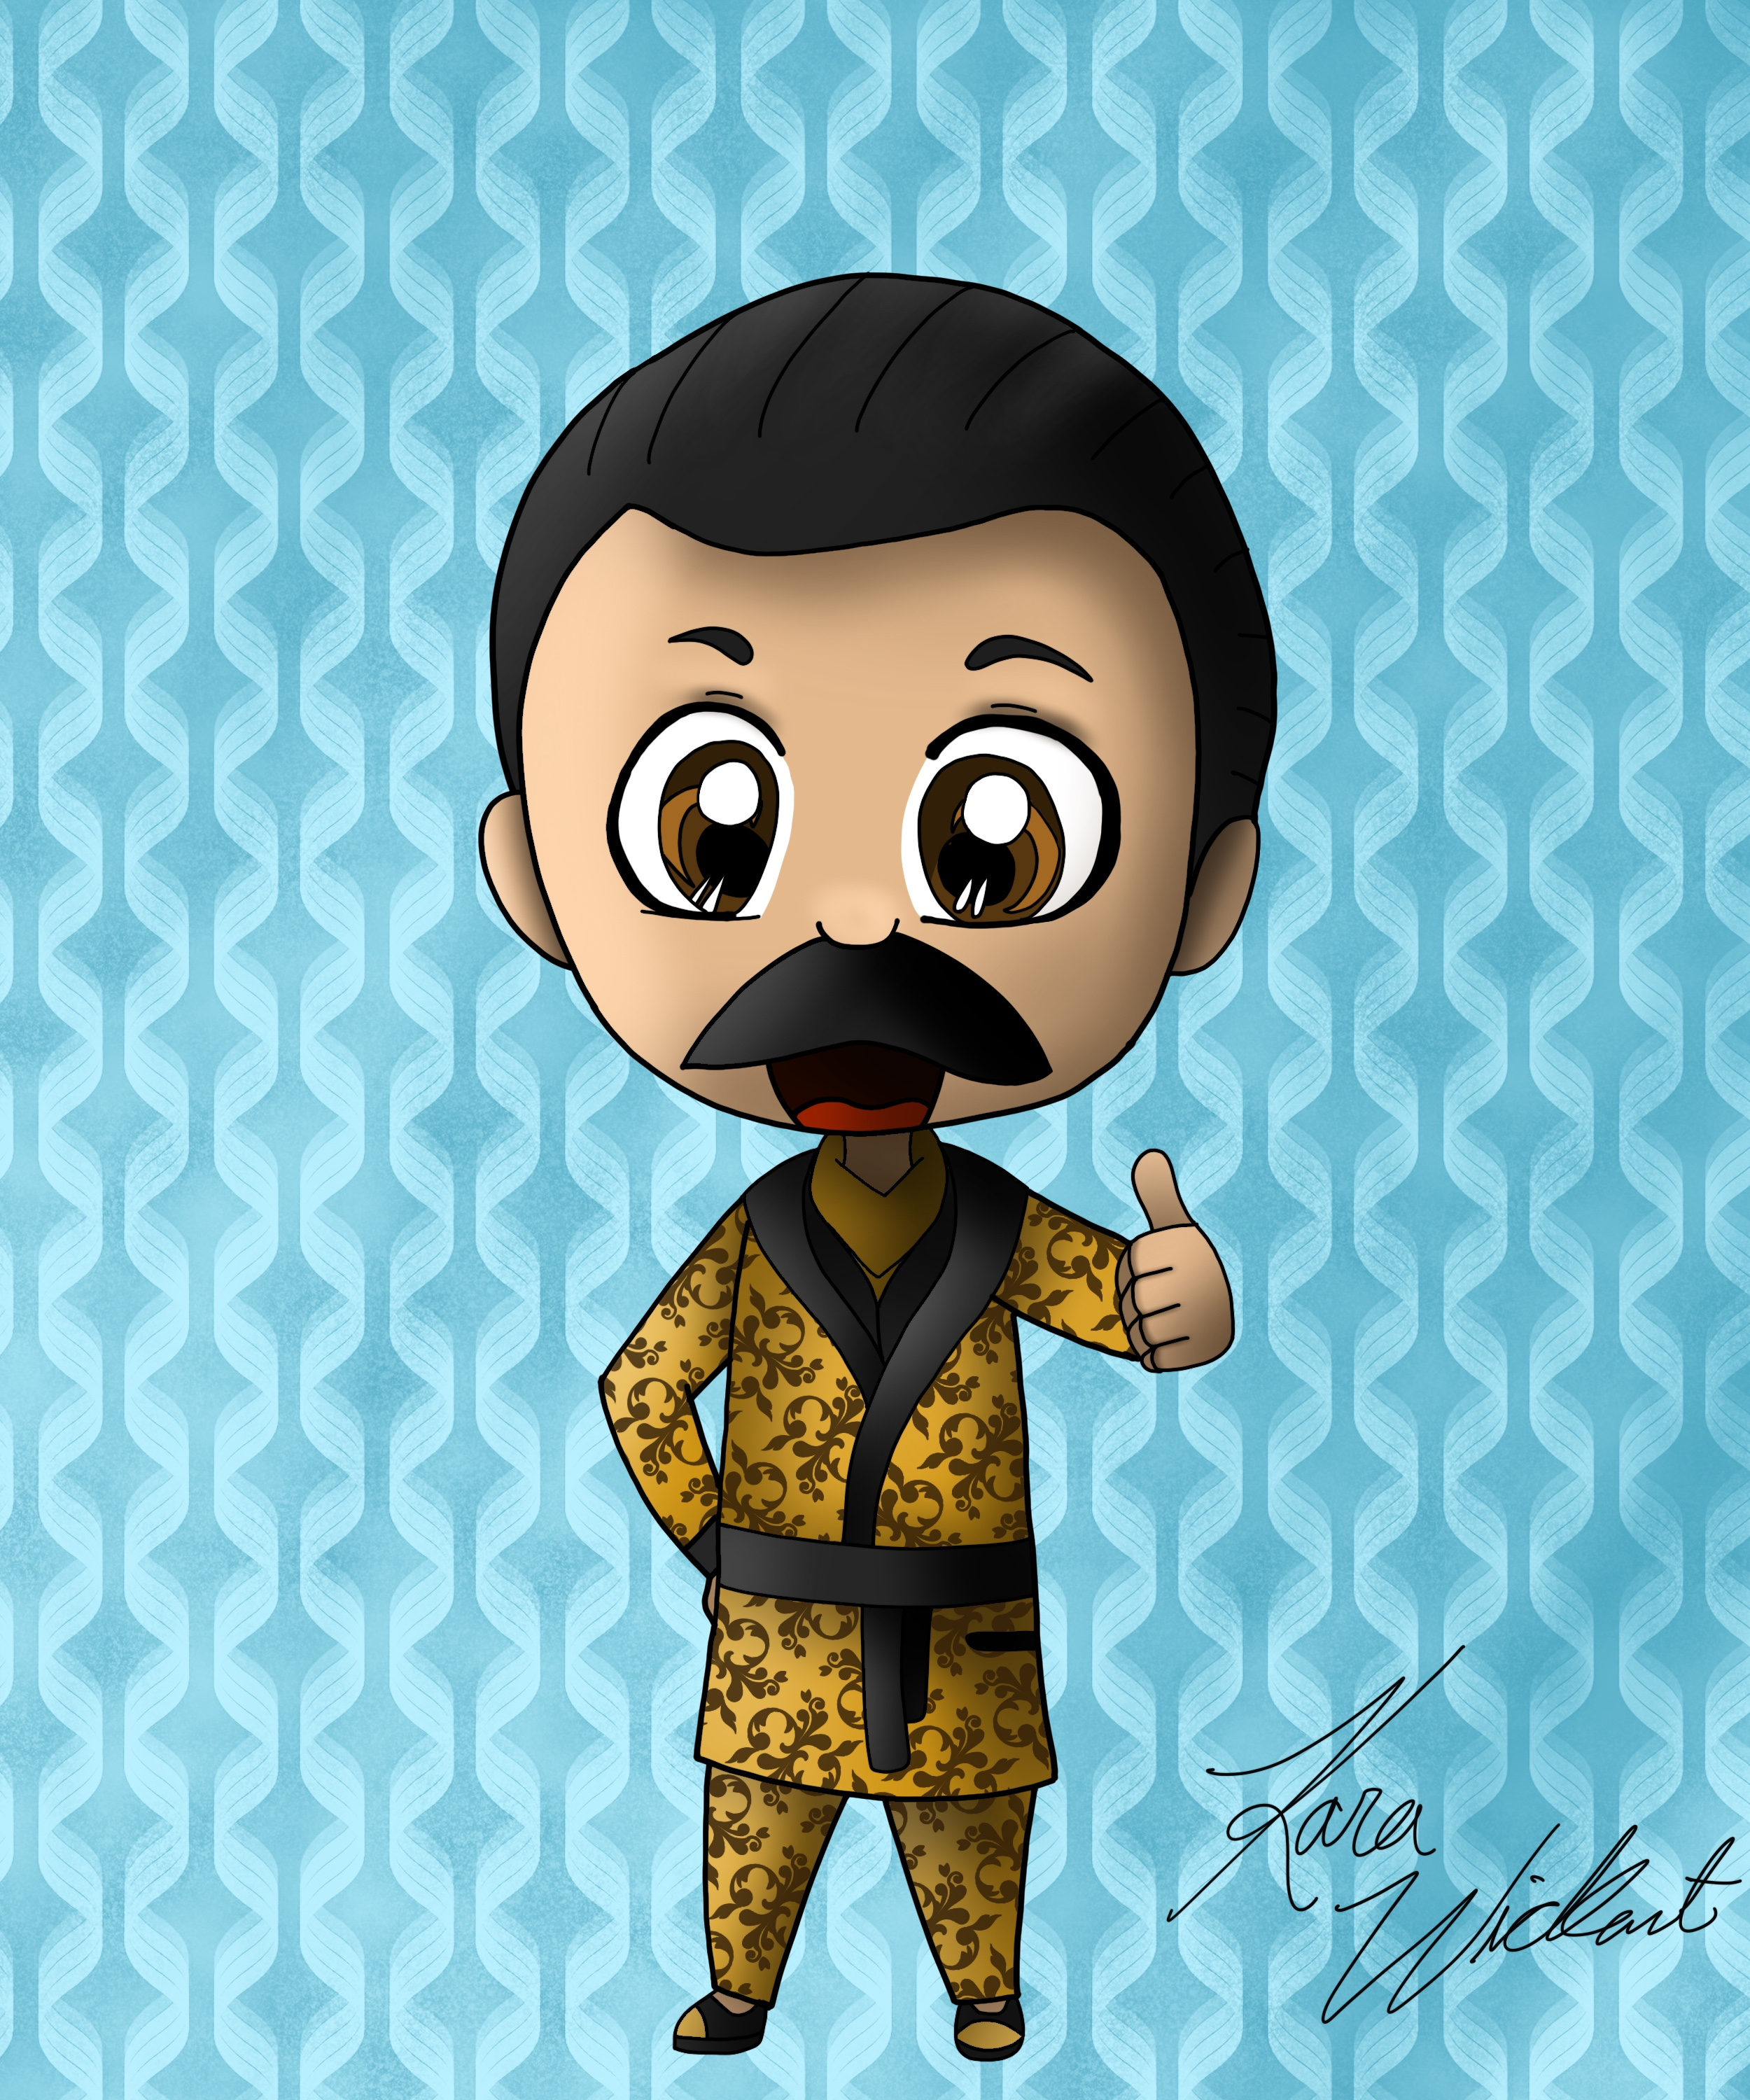 Ace dead by daylight clipart clipart freeuse stock Golden robe Ace chibi commision : deadbydaylight clipart freeuse stock